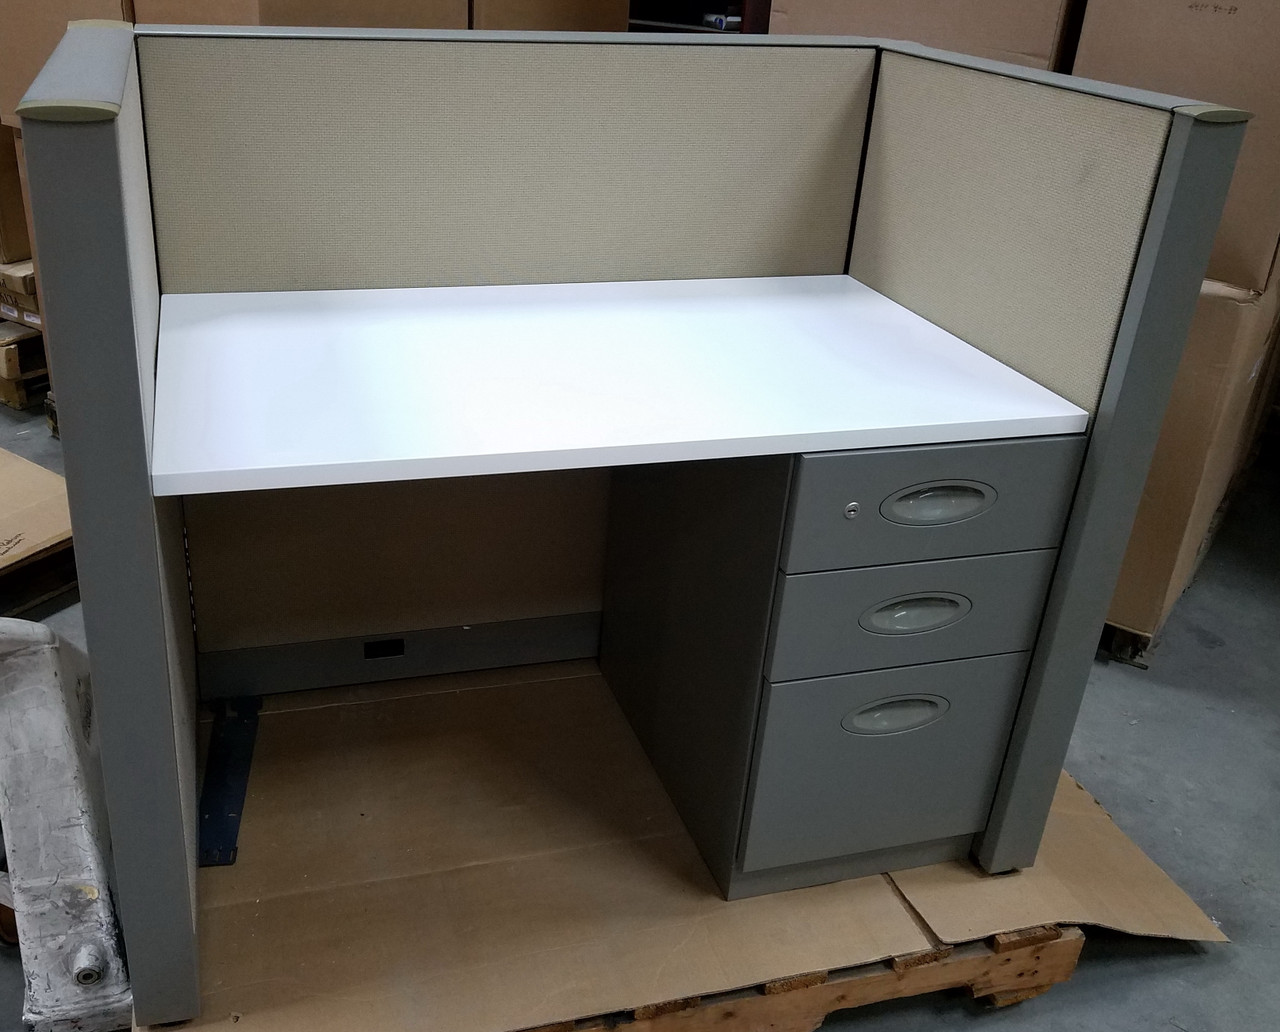 150 Used Steelcase Answer 42h X 42w X 24d Call Center Cubicles